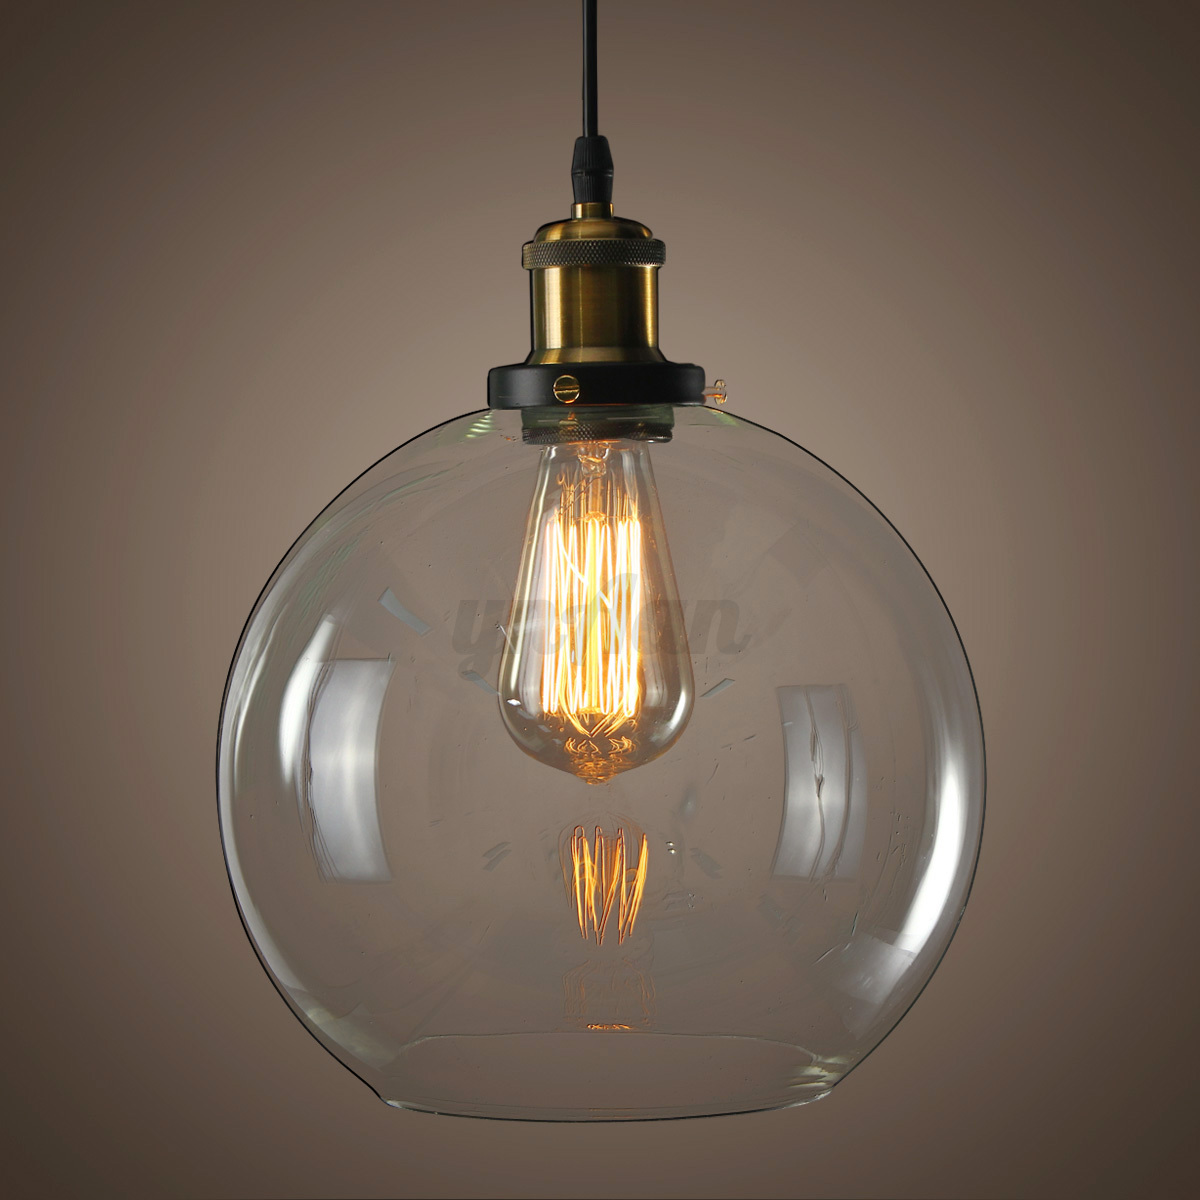 New glass modern vintage industrial retro loft ceiling for Industrial bulb pendant